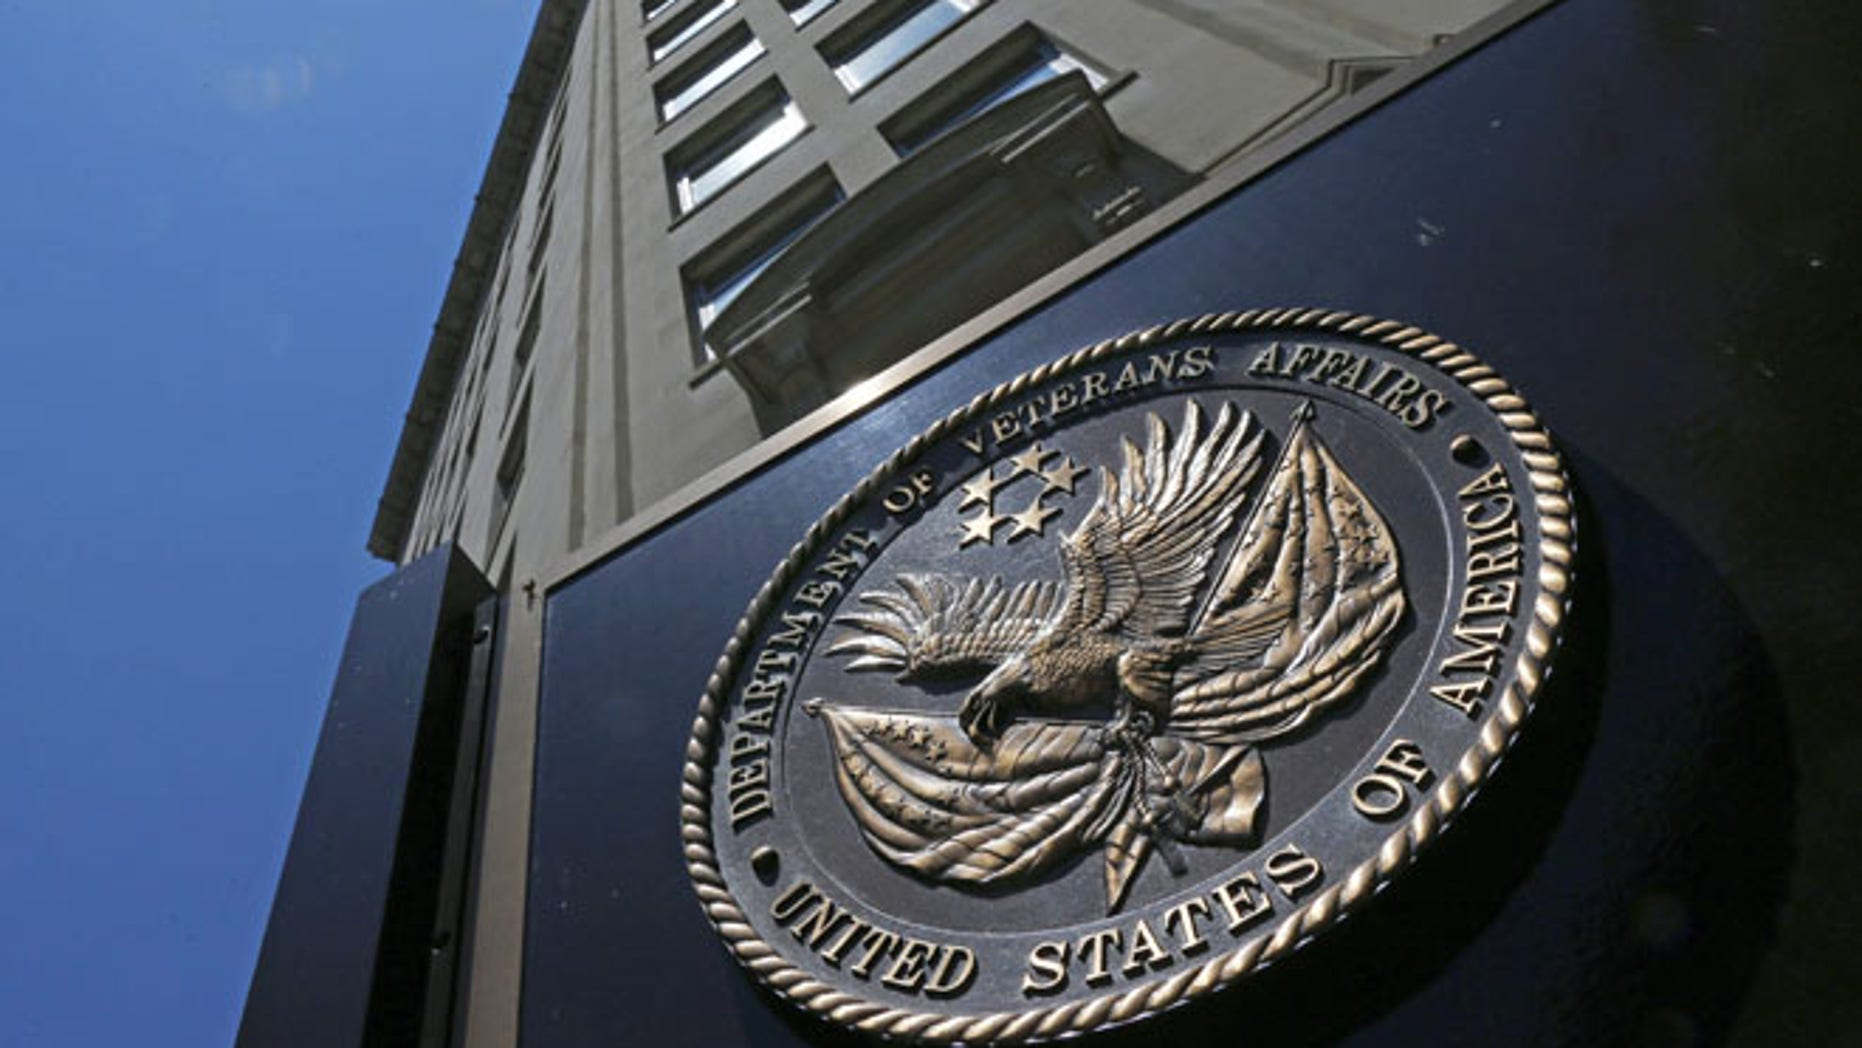 In this June 21, 2013, file photo, the seal affixed to the front of the Department of Veterans Affairs building in Washington.